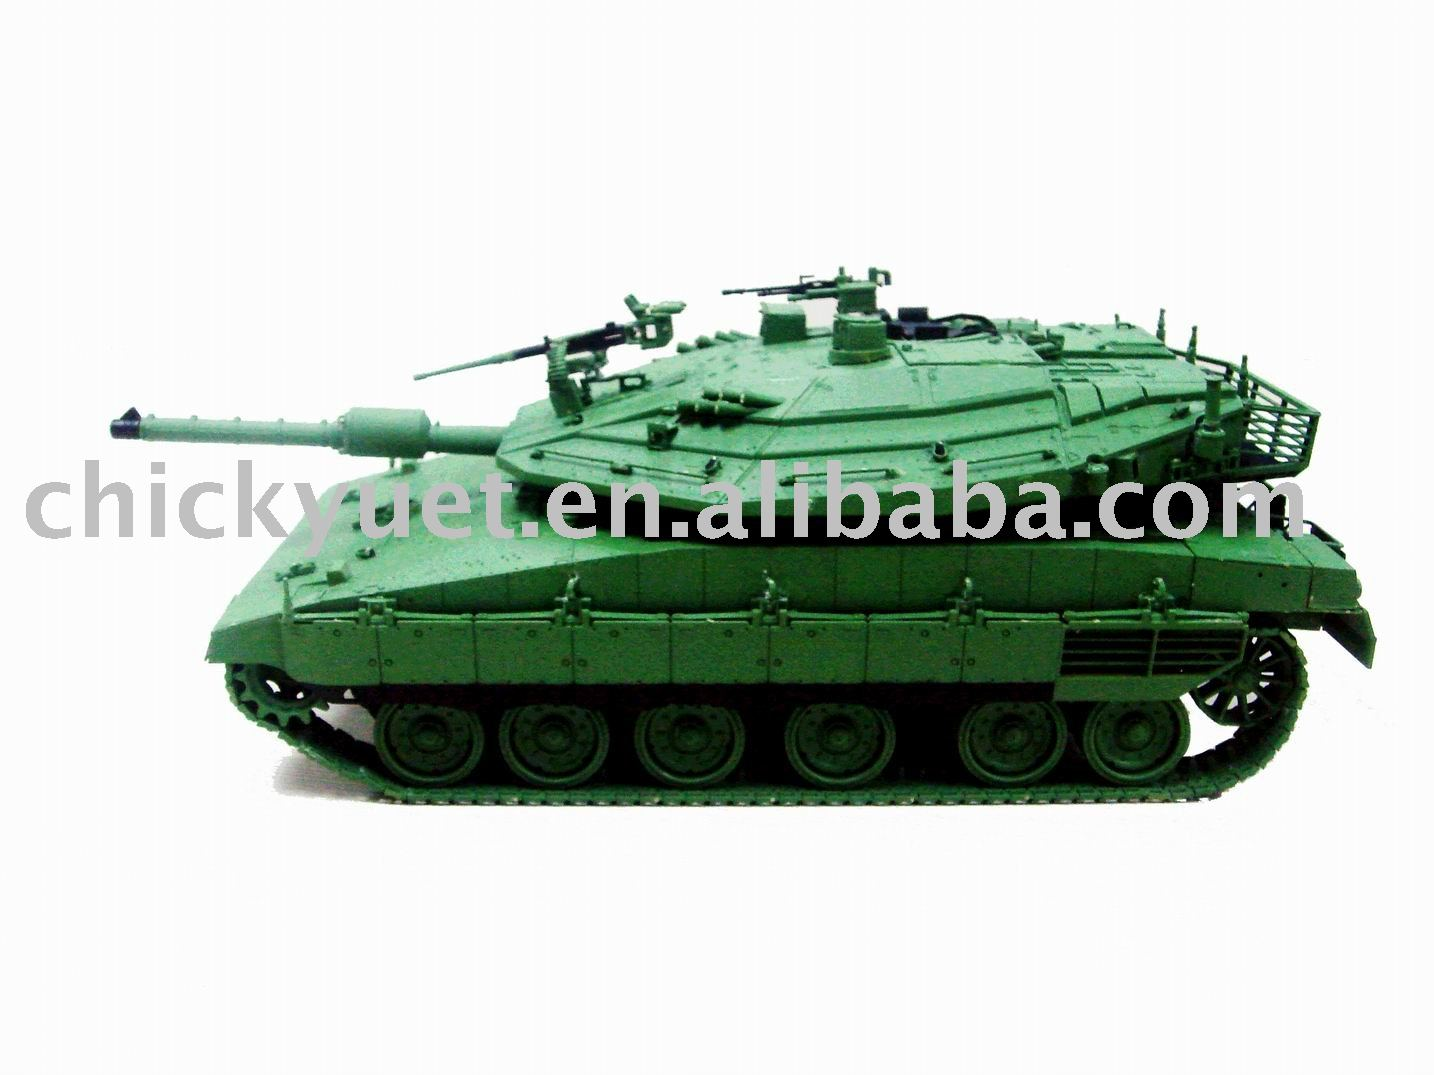 scale Die cast metal miniature tank model